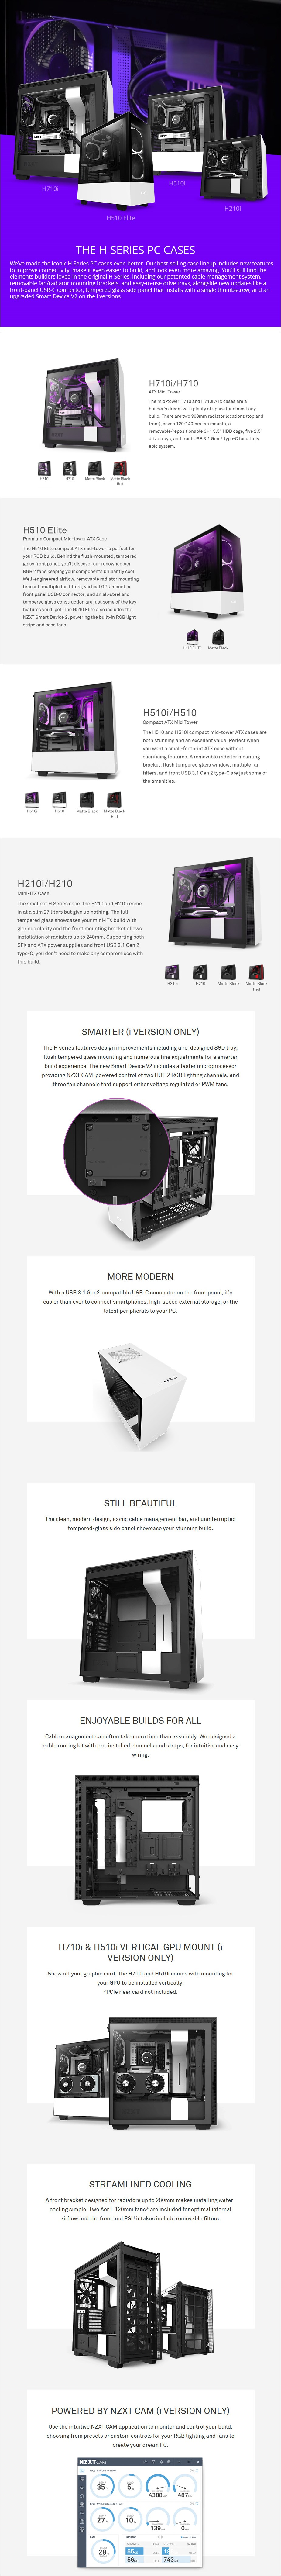 NZXT H510 Elite Tempered Glass Mid-Tower E-ATX Case - Overview 1